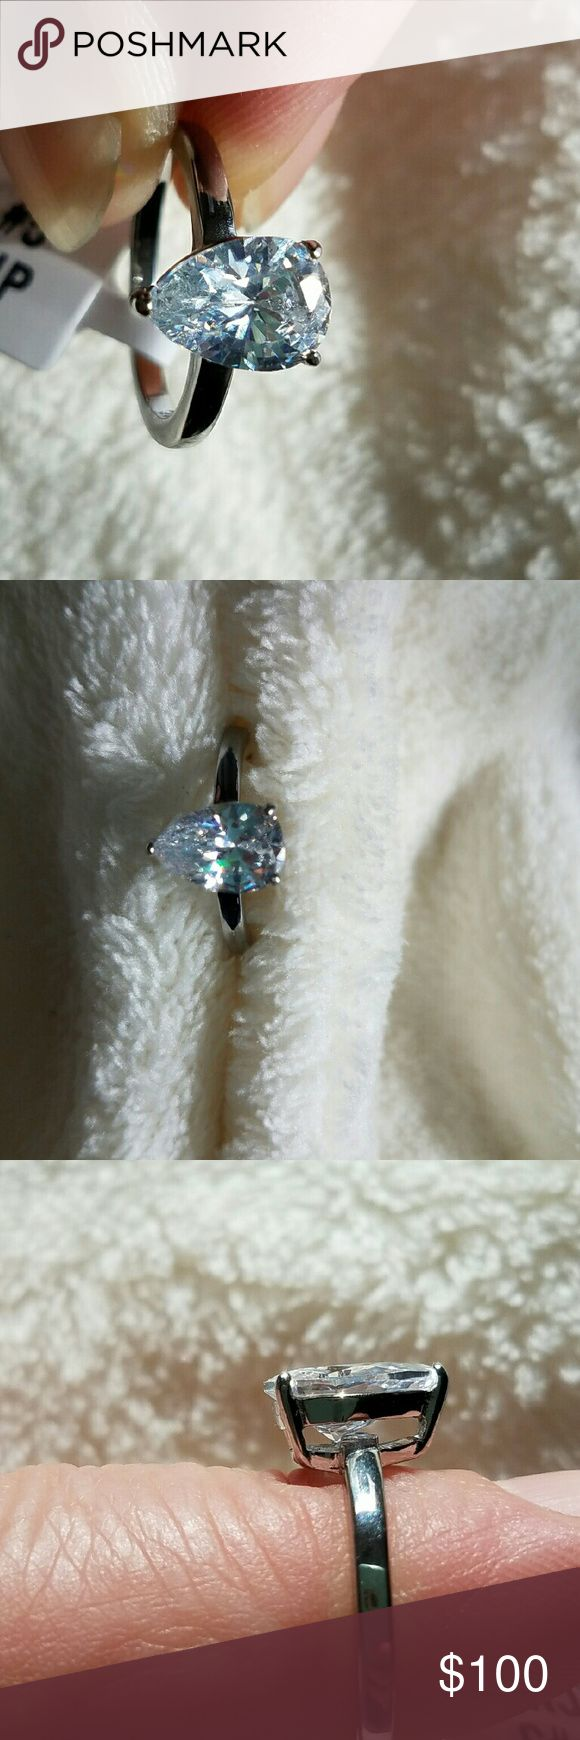 NWT Cz Engagement Ring Size 6 This is an exquisite ring that sparkles brilliantly. A beautiful stainless steel ring with a gorgeous 1.80 karat cz that is 2mm wide. Will not tarnish. Stamped 316. A stunning ring that is cut to look like a real diamond. Jewelry Rings